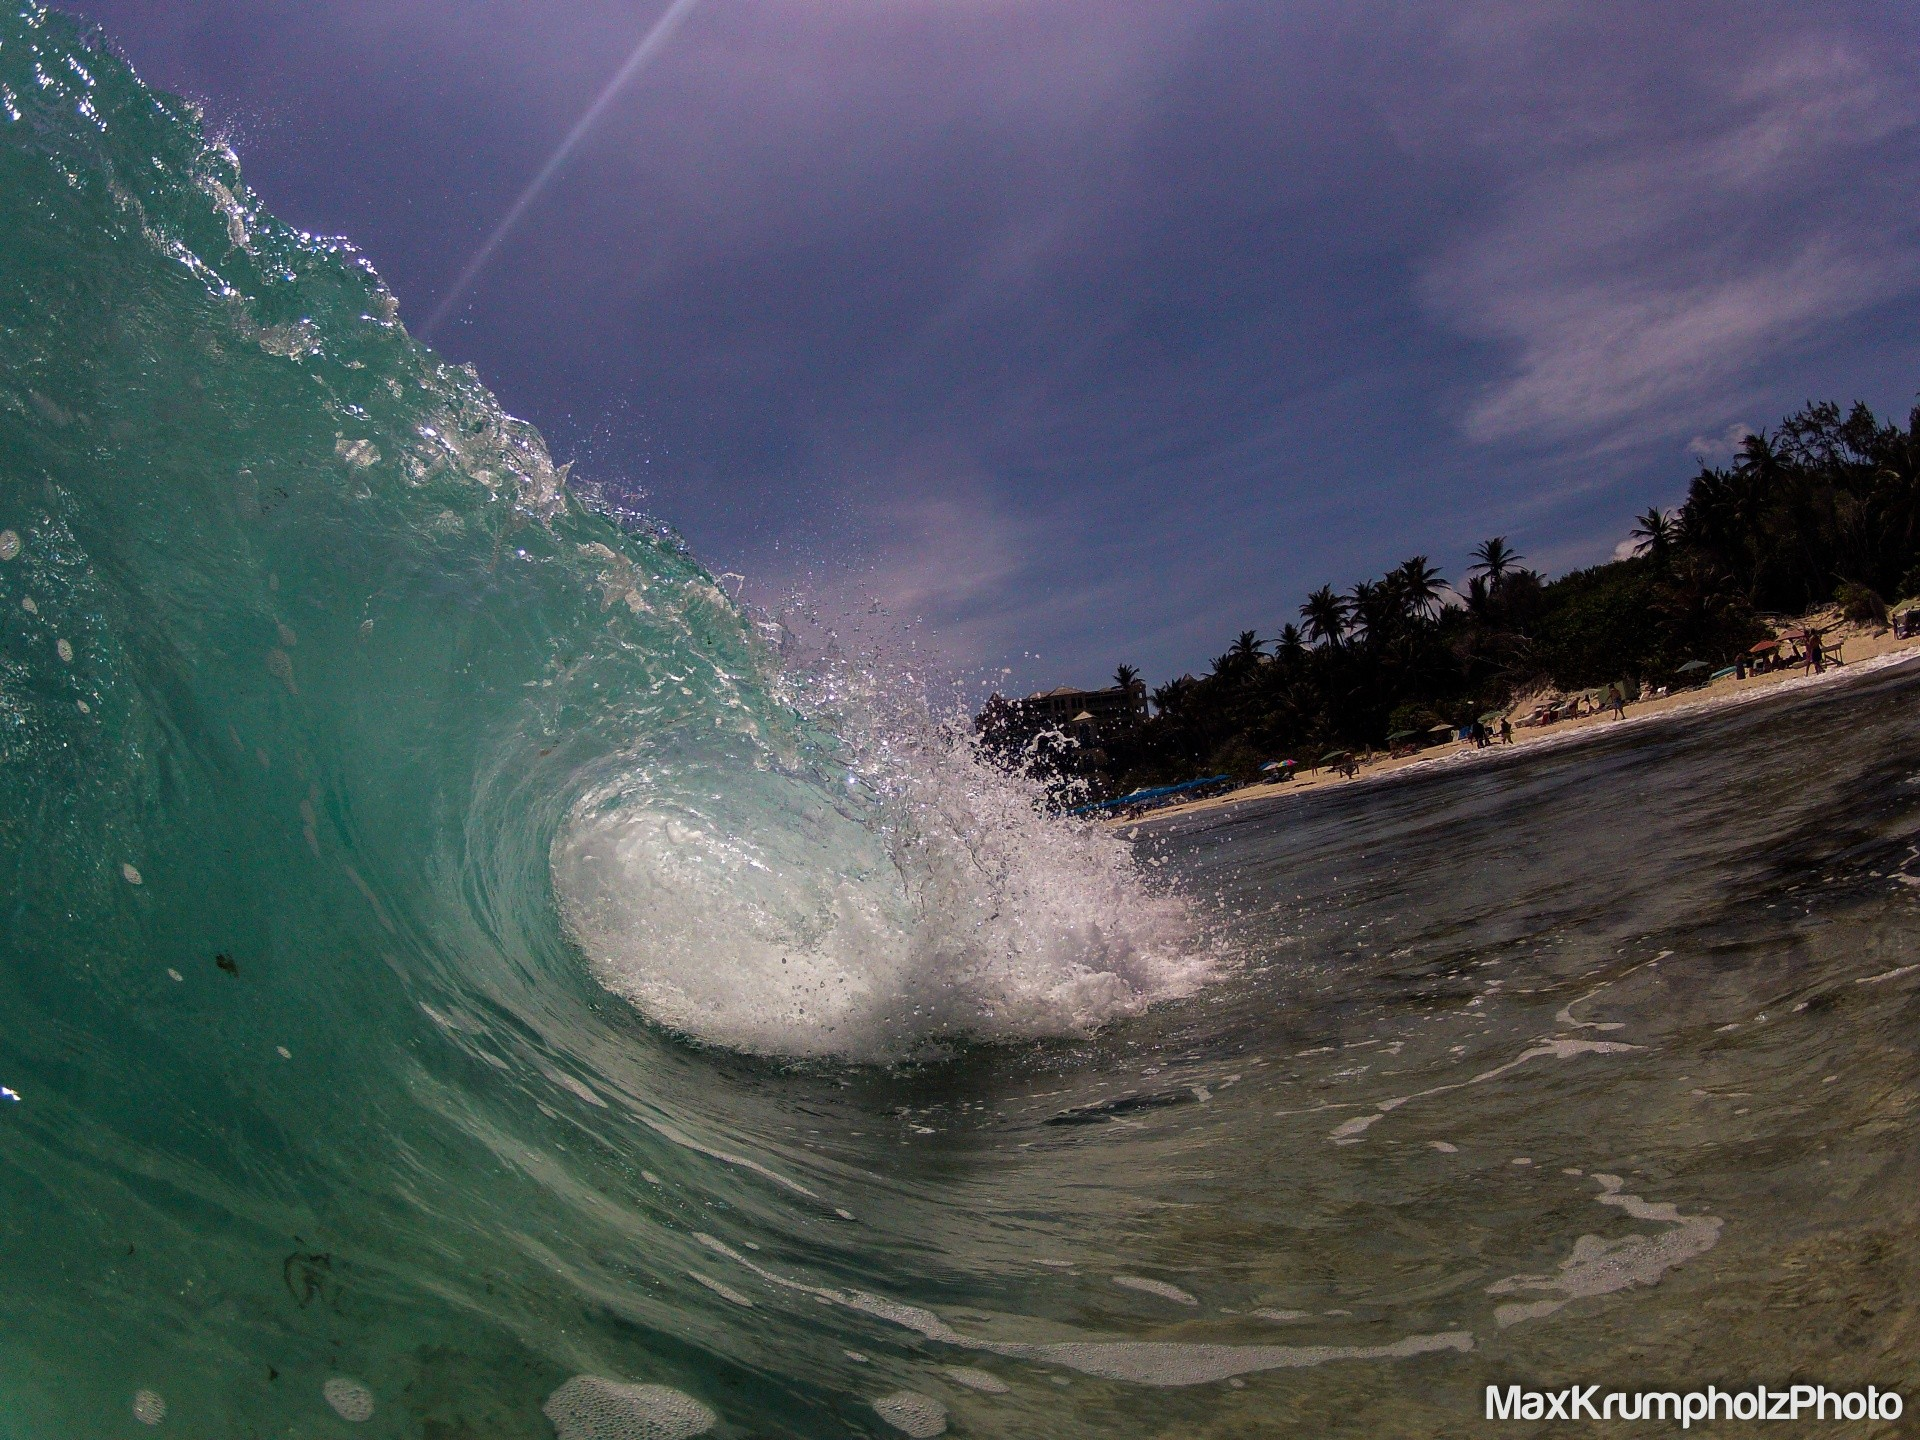 Max Krumpholz's photo of Long Beach